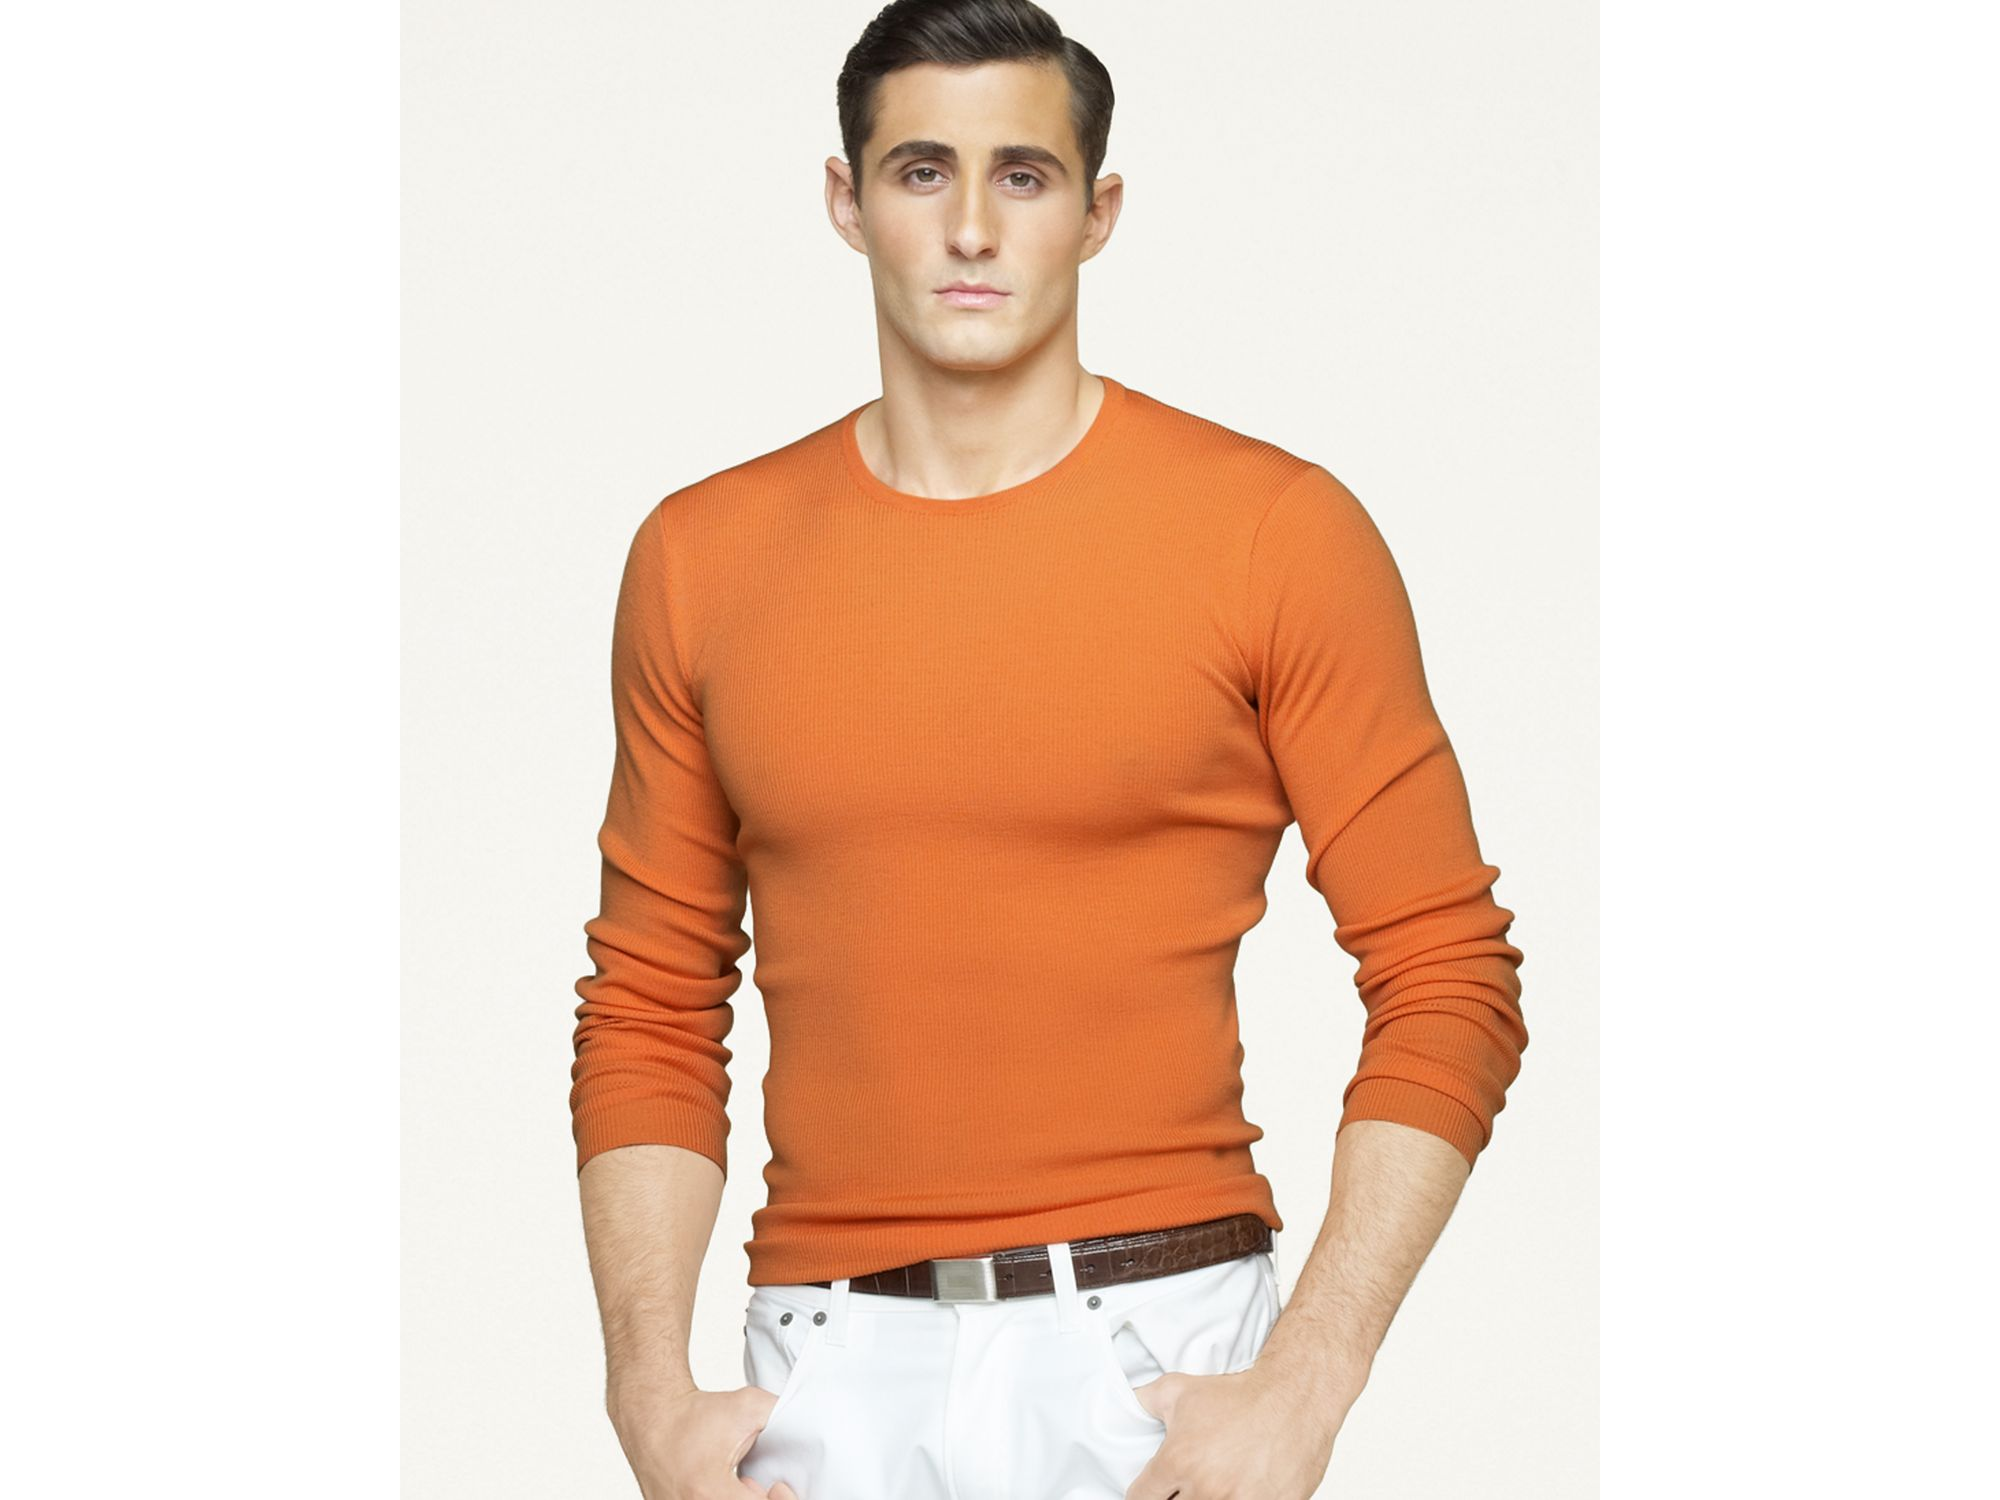 Ralph Lauren Orange Round Neck Sweaters Mesh Men .